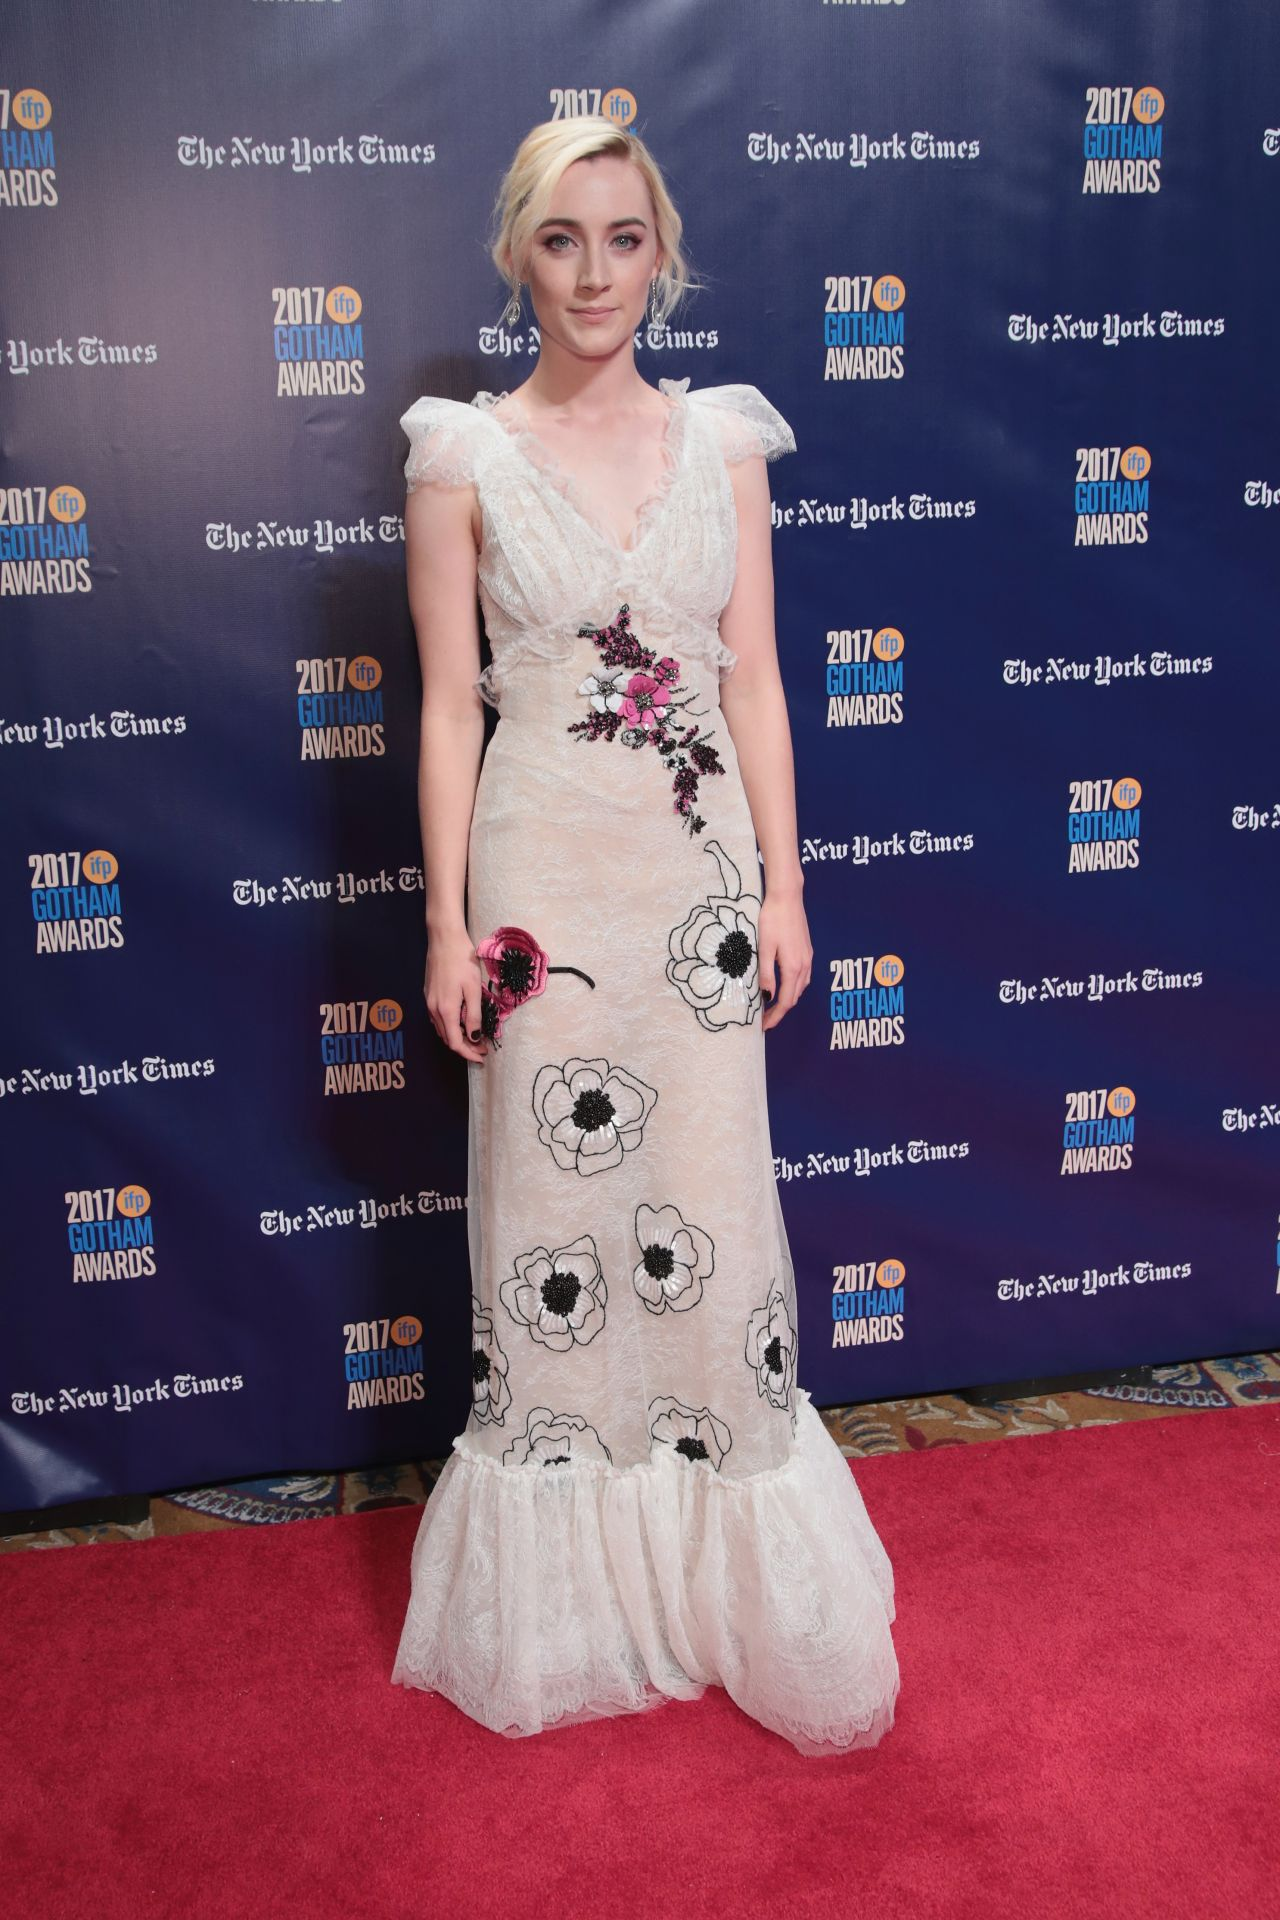 http://celebmafia.com/wp-content/uploads/2017/11/saoirse-ronan-gotham-independent-film-awards-2017-in-new-york-1.jpg